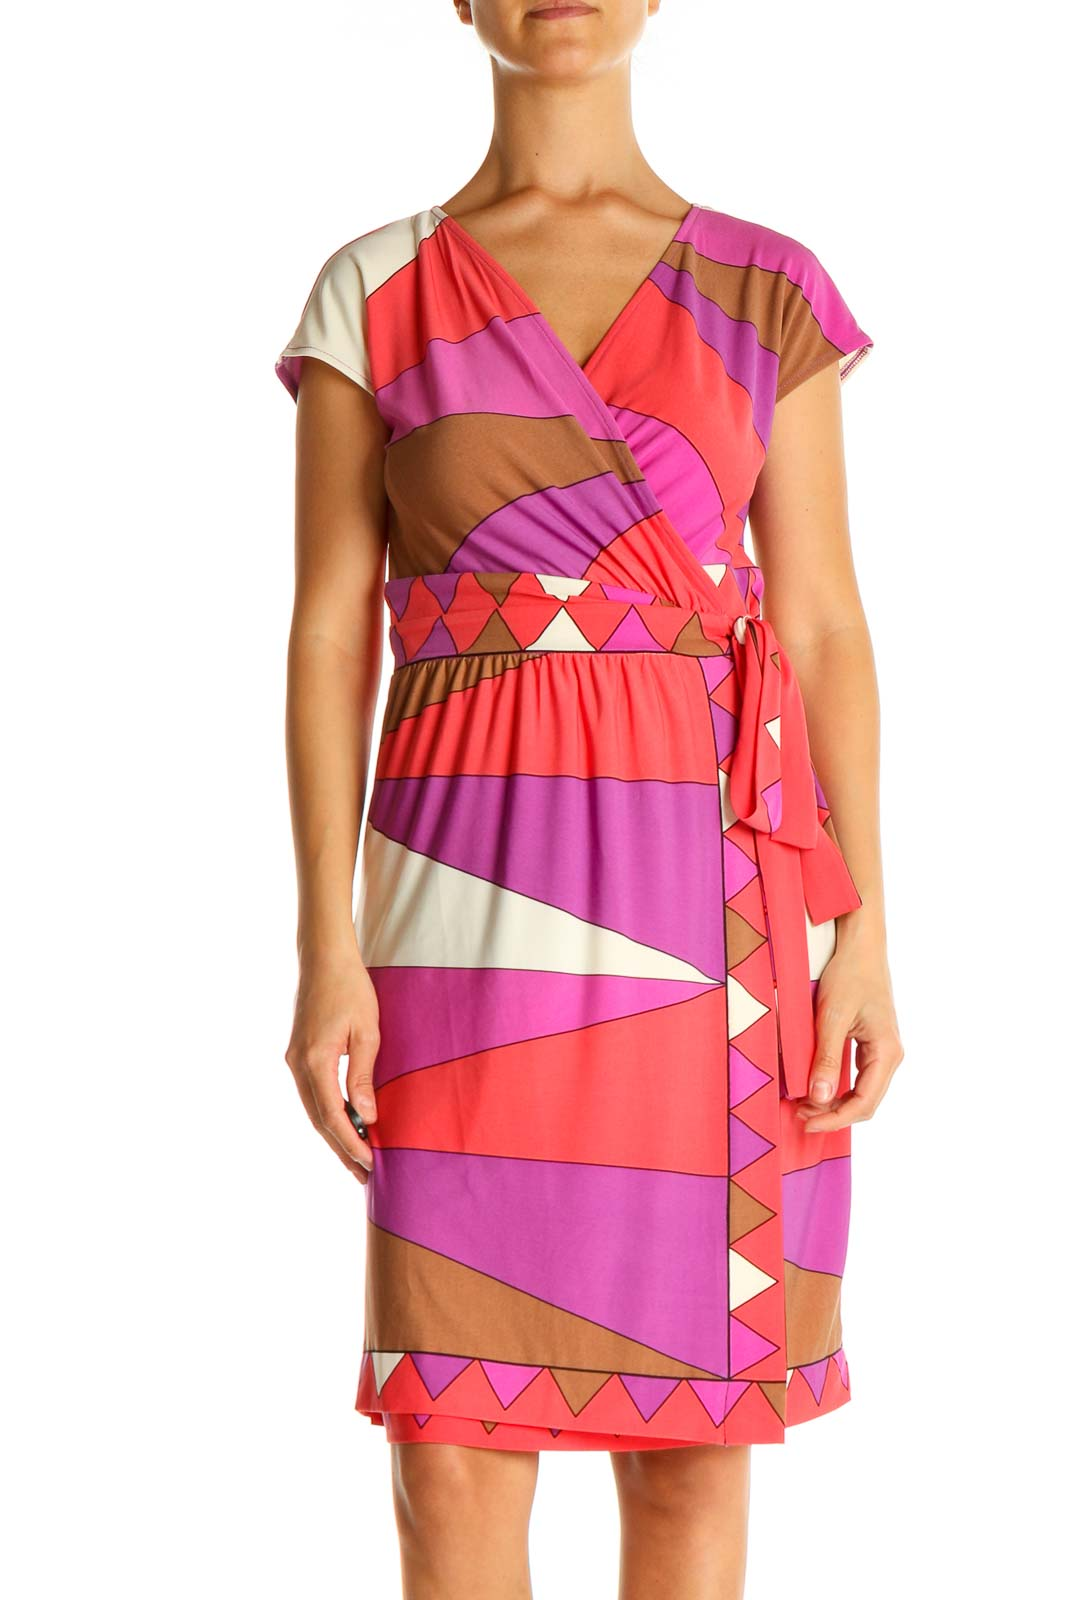 Pink Graphic Print Retro Fit & Flare Dress Front